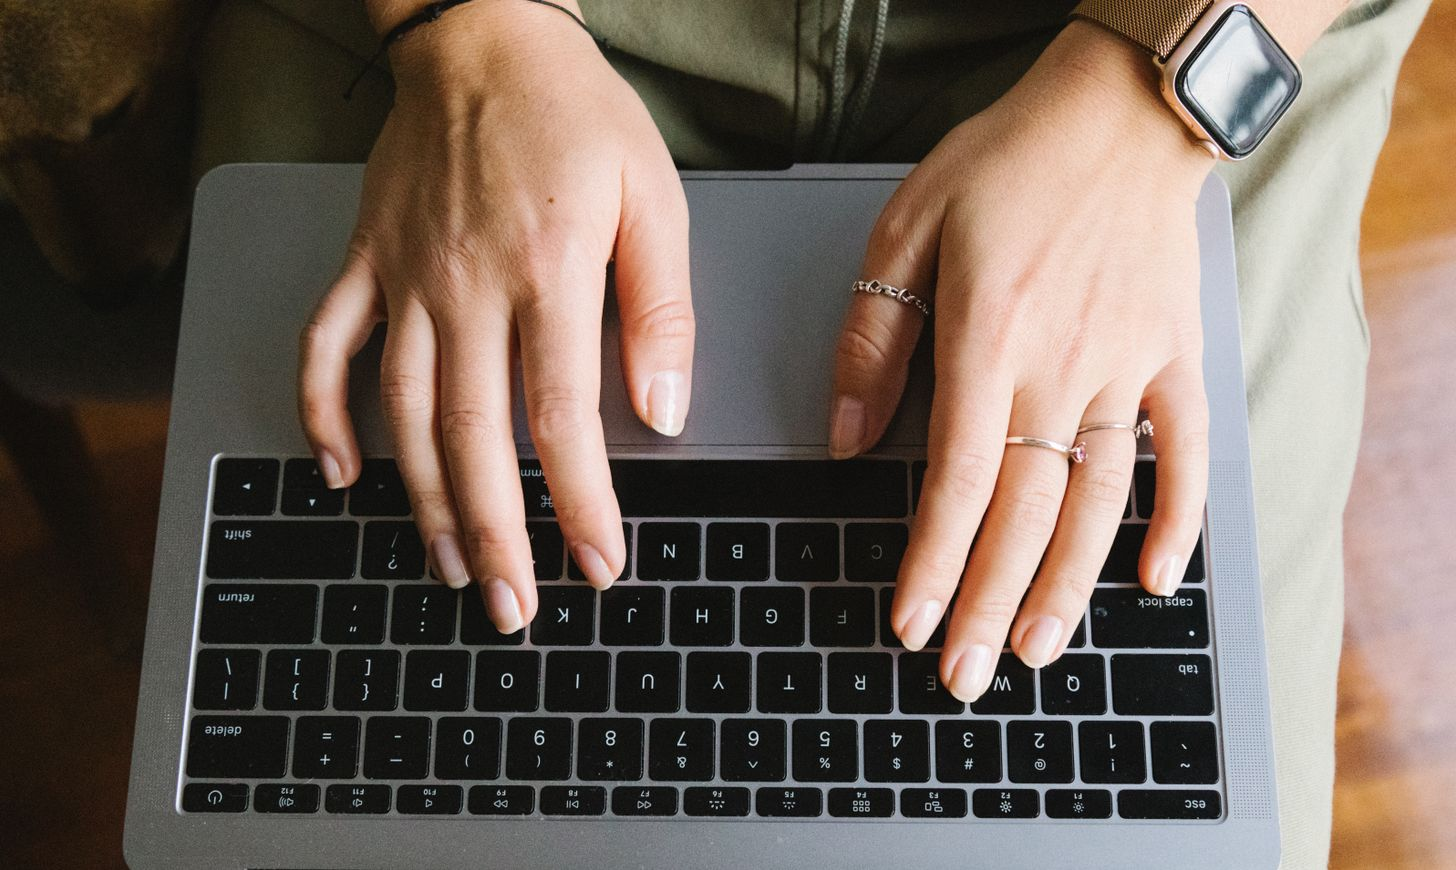 hands on keyboard typing search.jpg